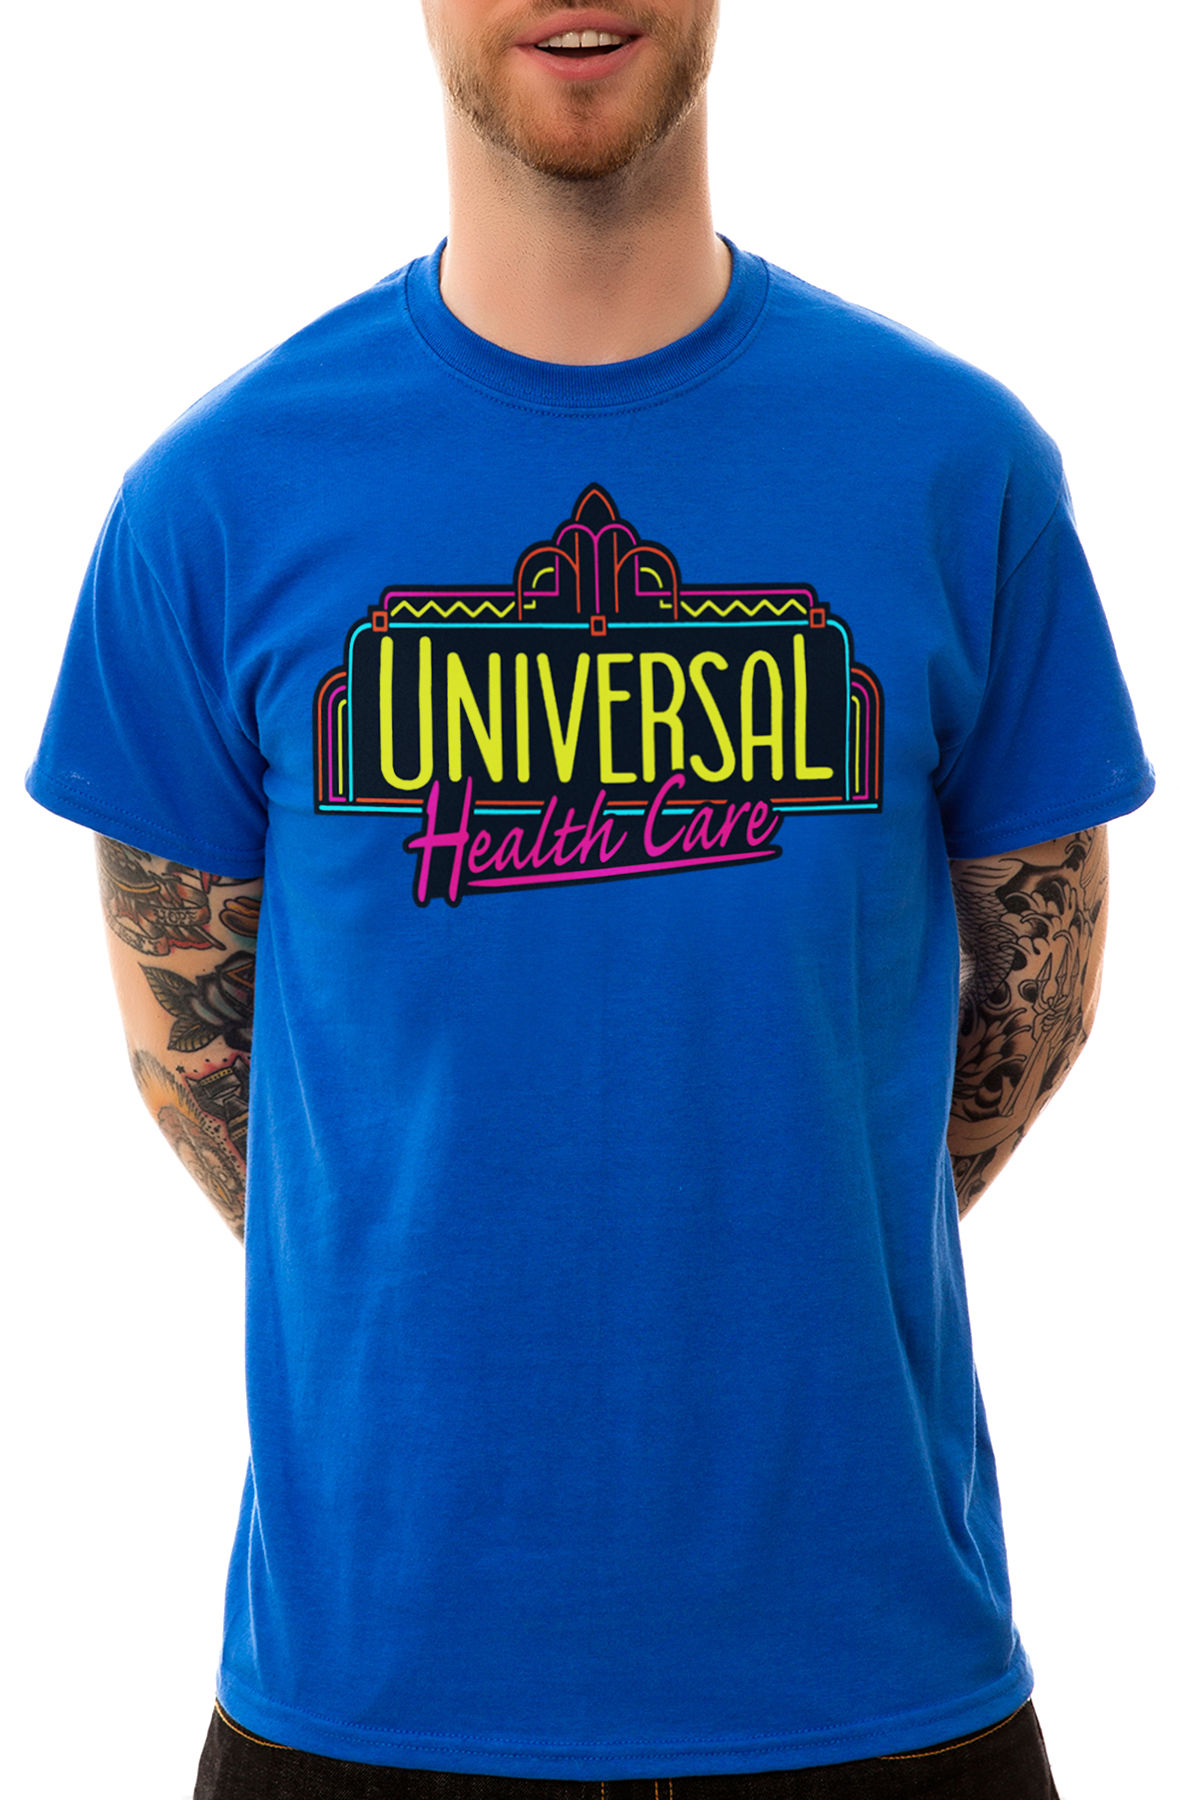 Image of The Universal Health Care Tee in Blue